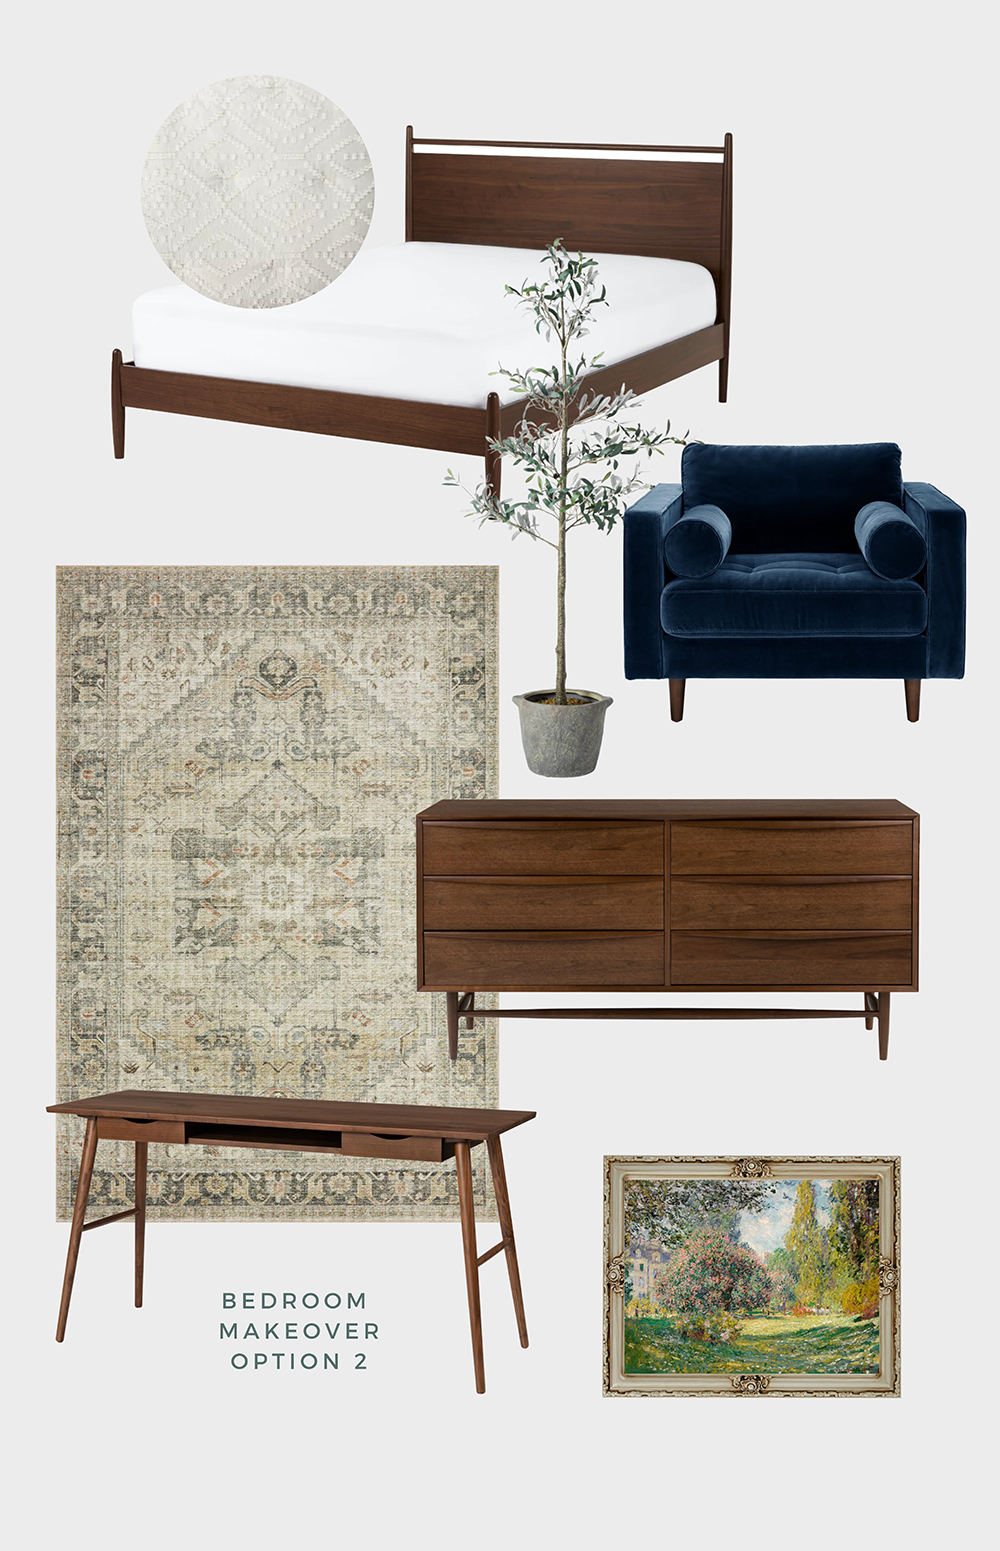 primary bedroom makeover article furniture